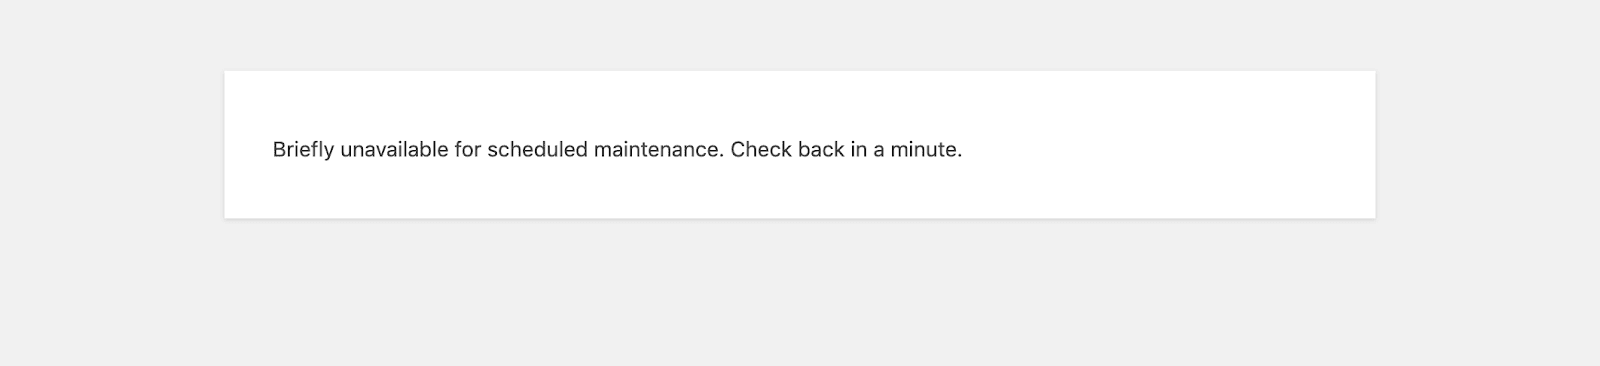 "De melding ""Briefly unavailable for scheduled maintenance"" in WordPress"